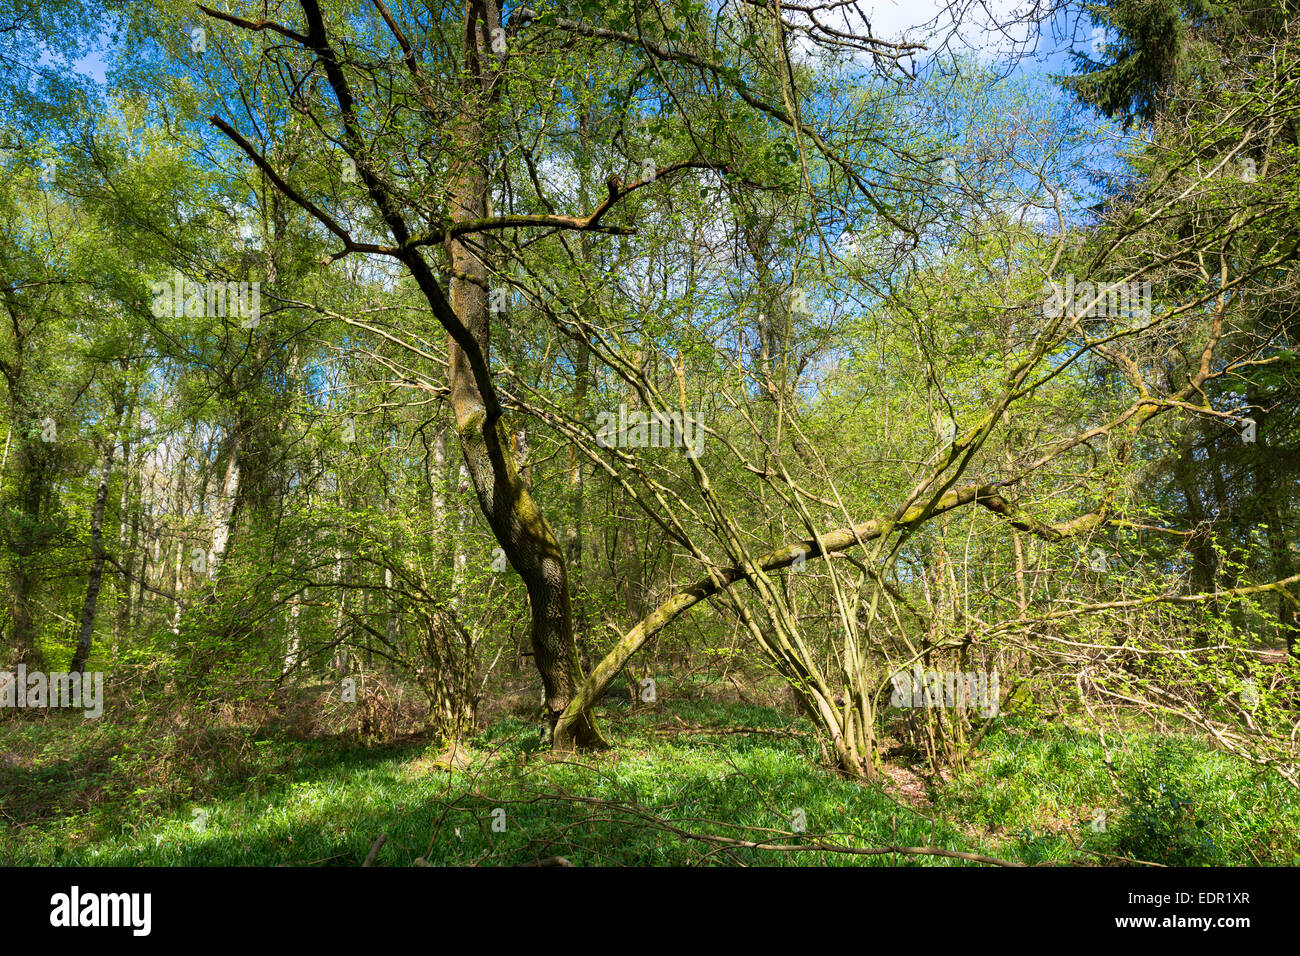 Woodland scene of beech trees and silver birch at Bruern Wood in The Cotswolds, Oxfordshire, UK Stock Photo